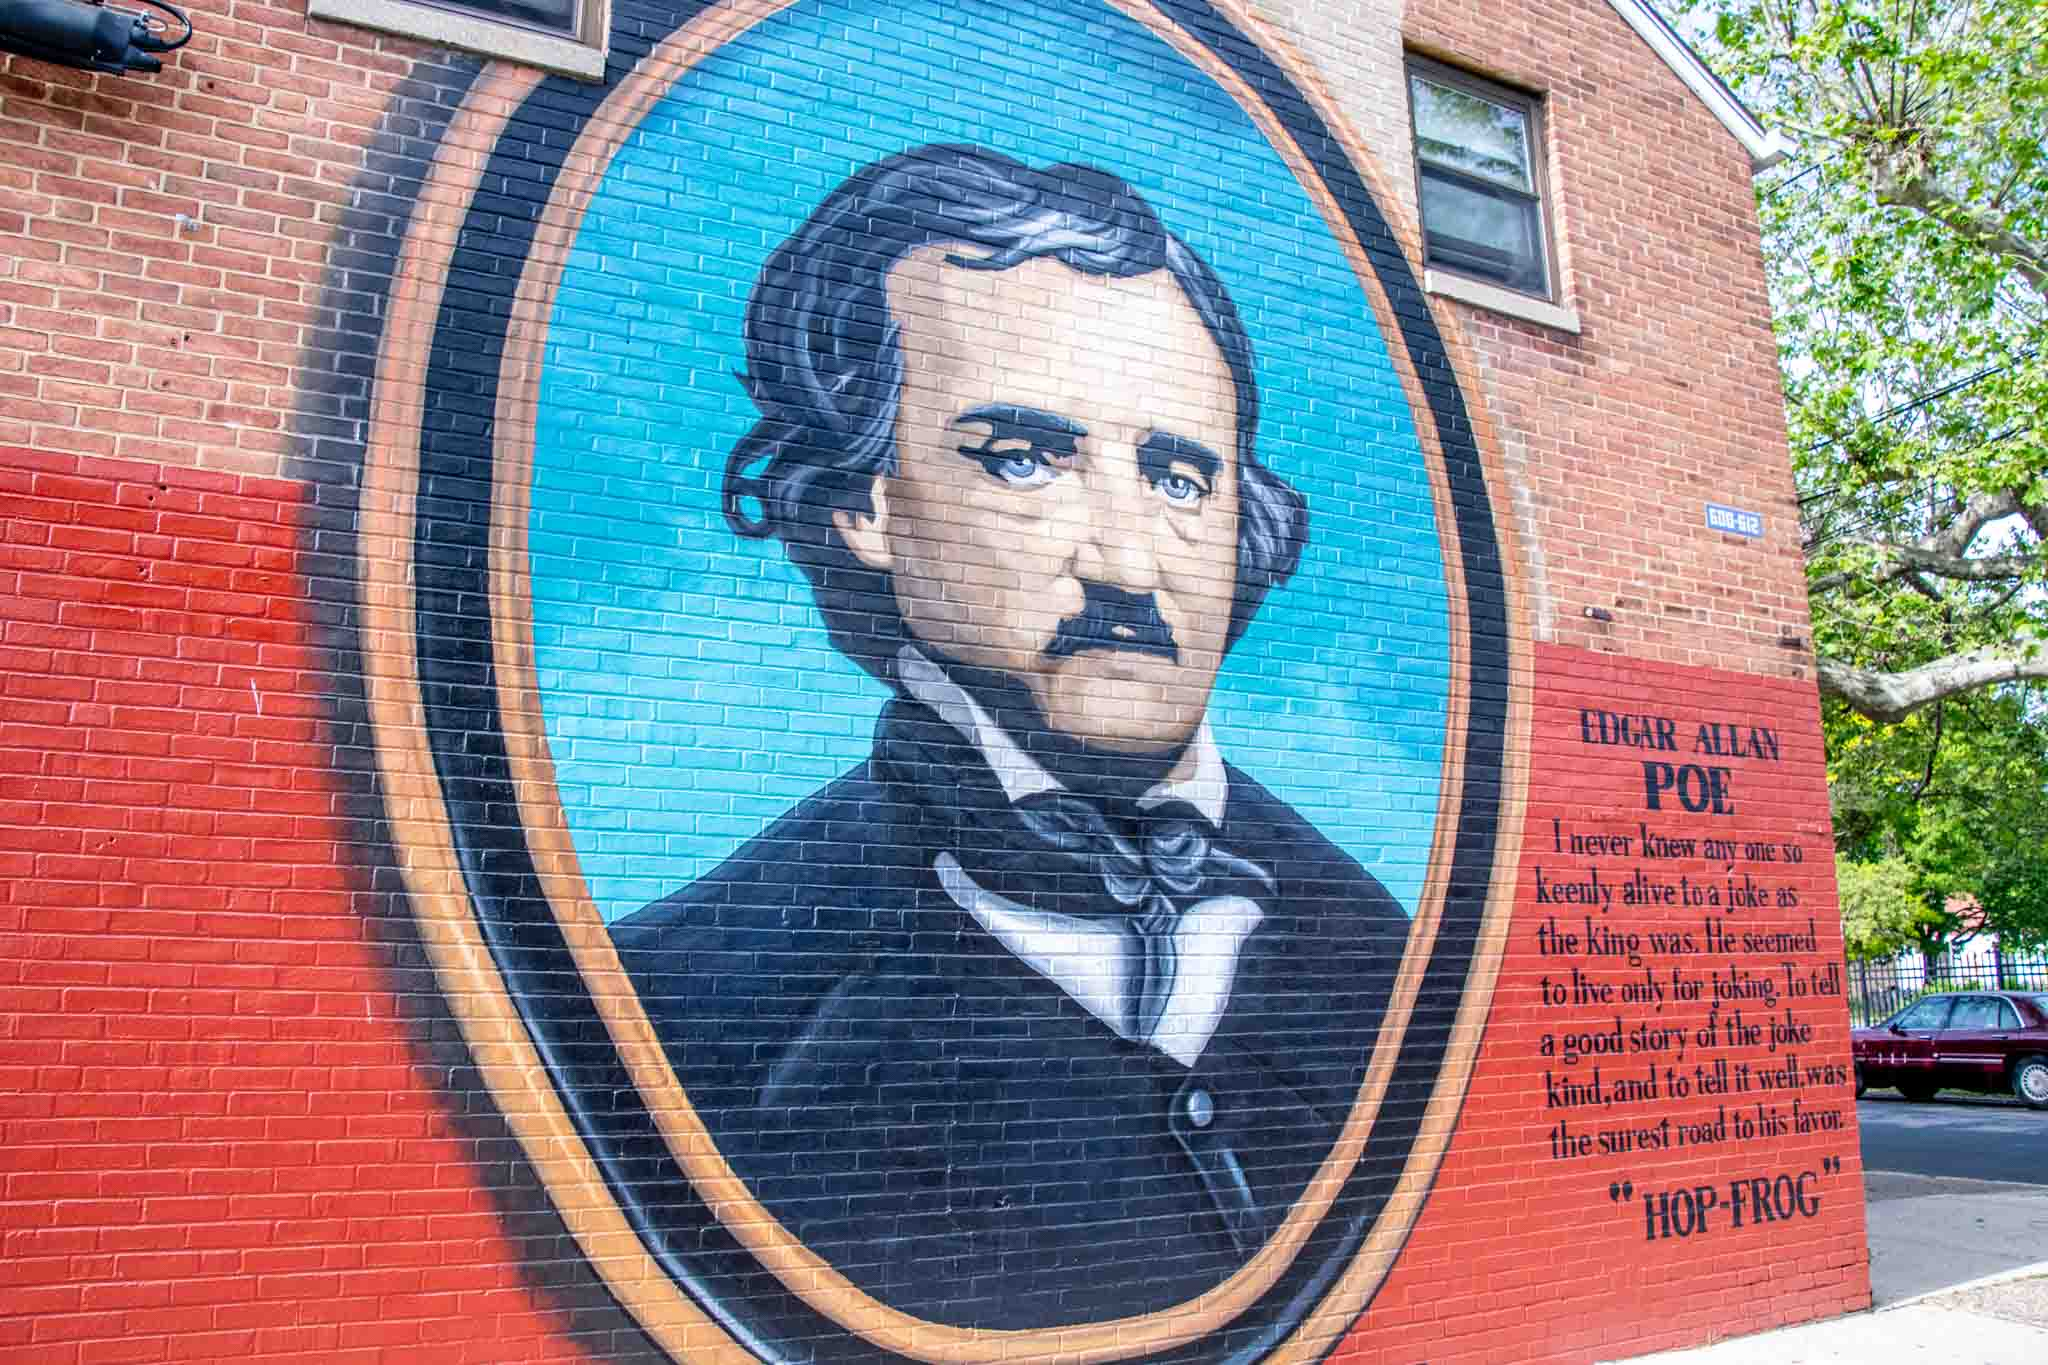 Mural of an old-fashioned portrait of Edgar Allan Poe in a black jacket